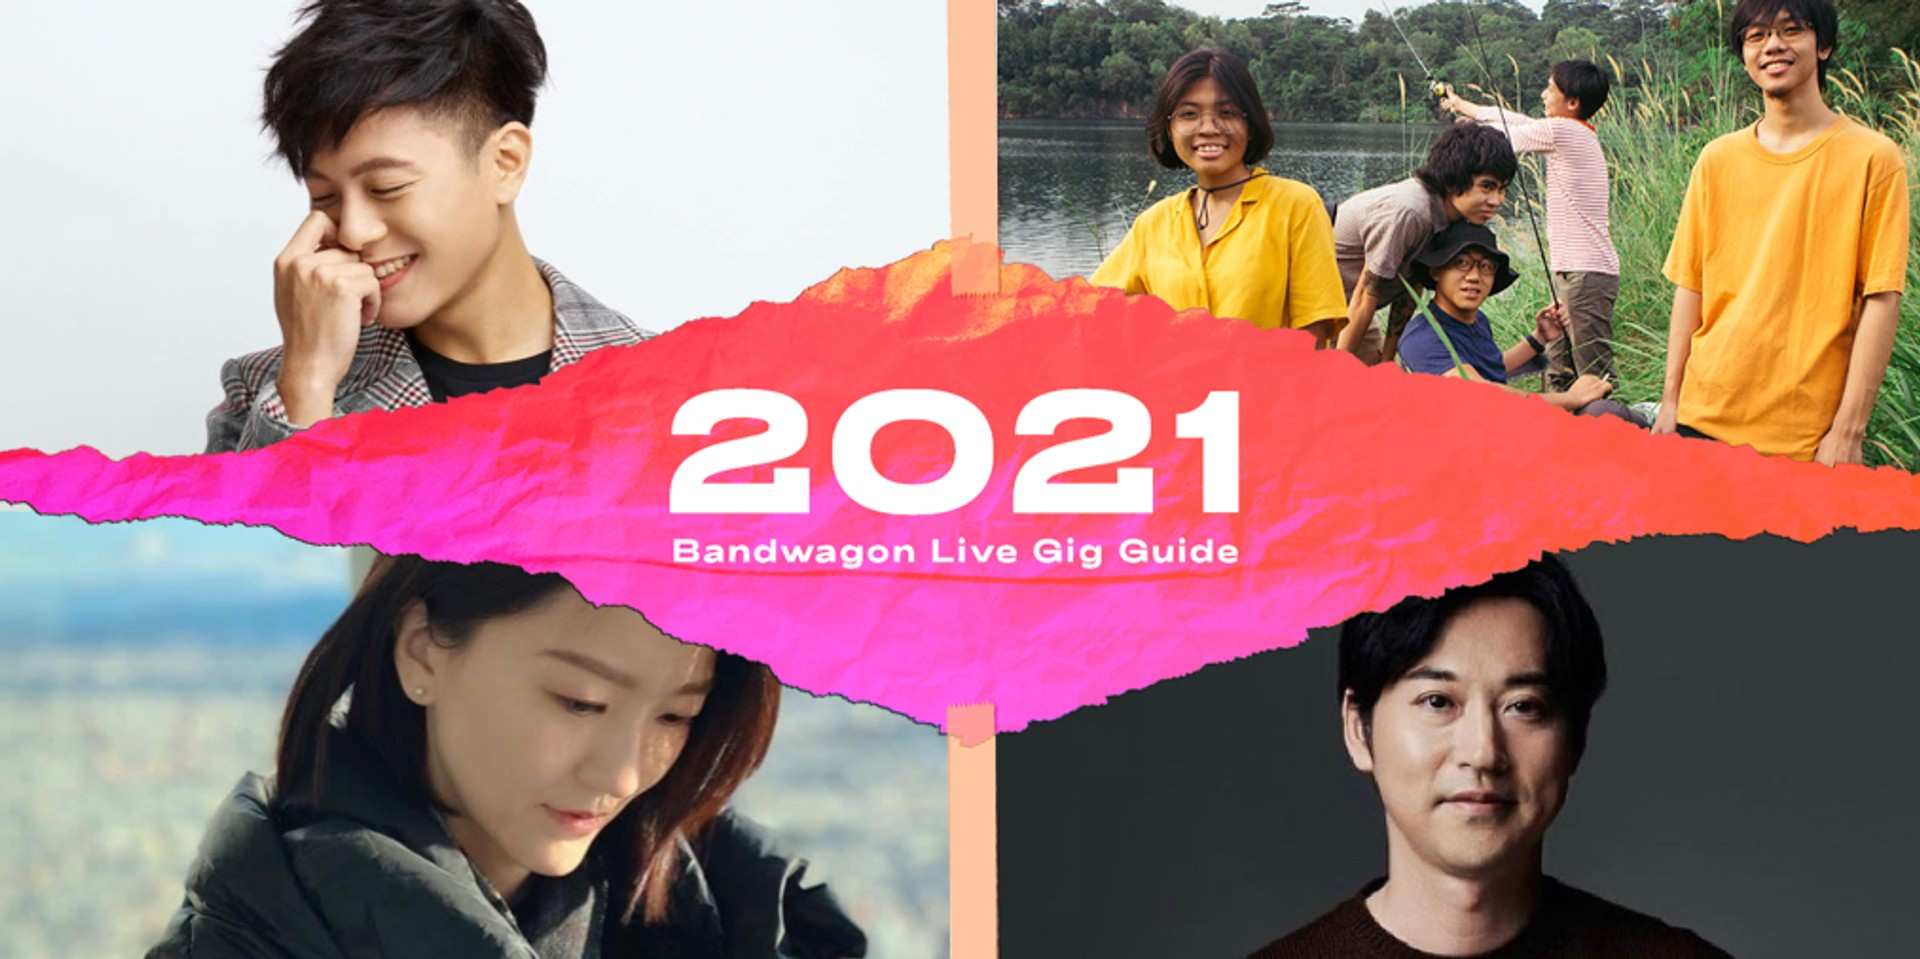 Live gigs and concerts to catch in Singapore in 2021